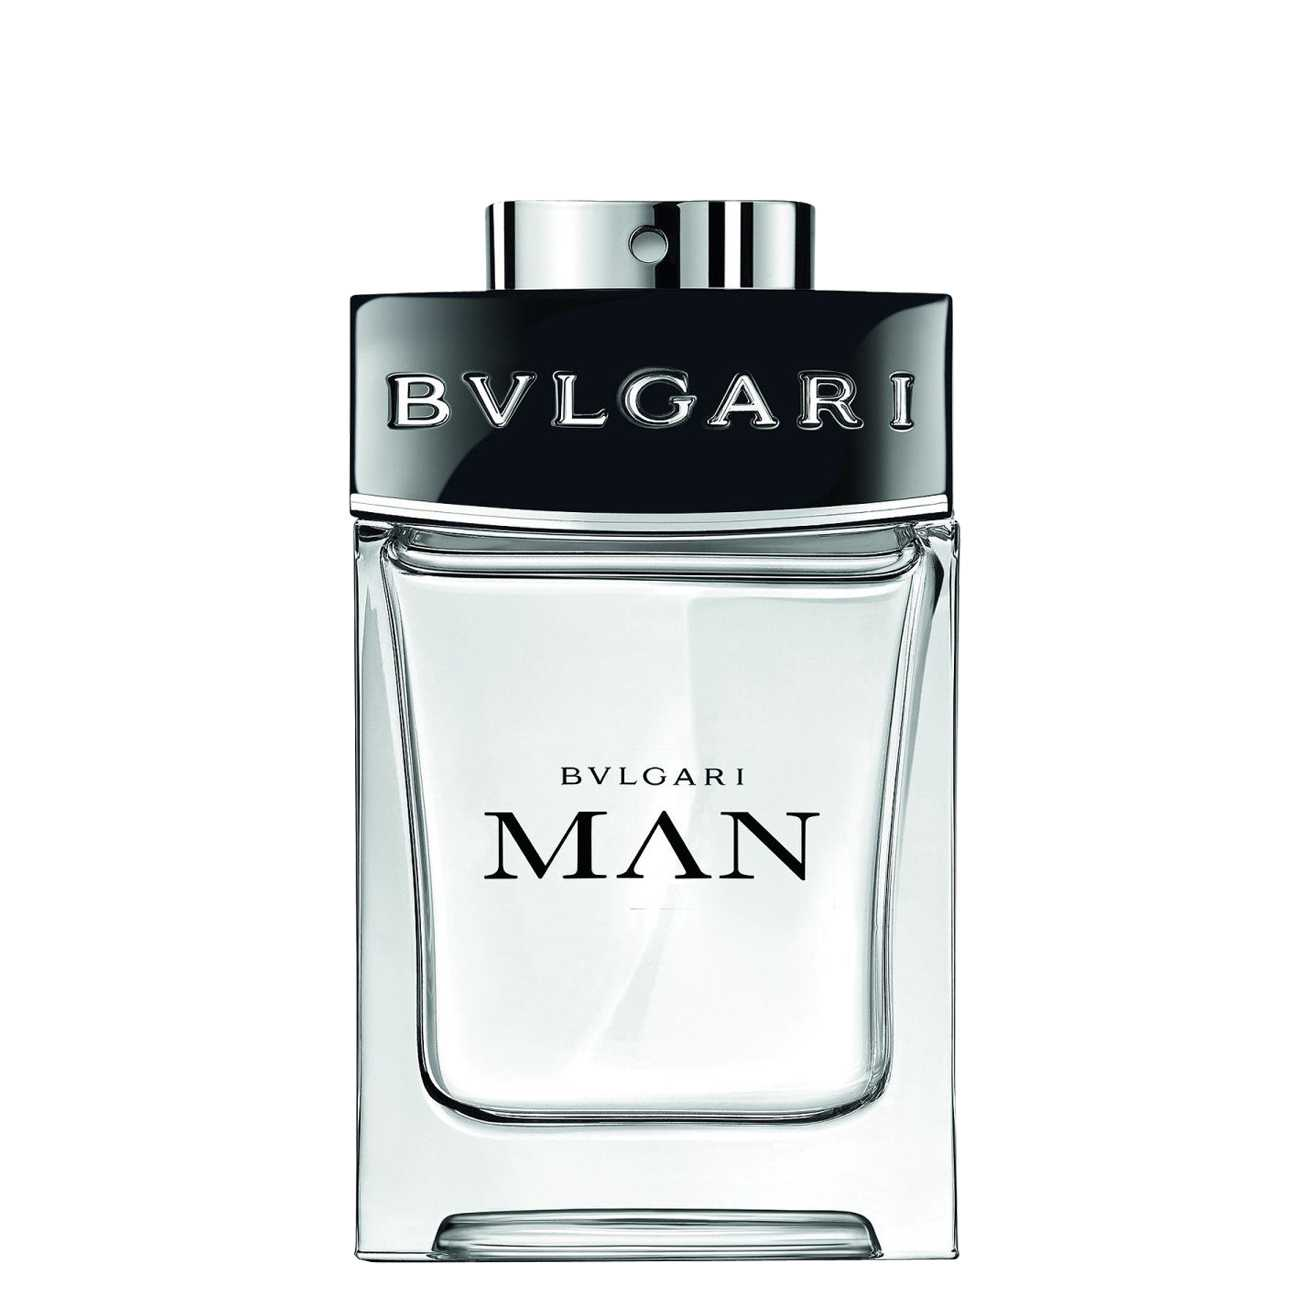 MAN 100ml imagine produs